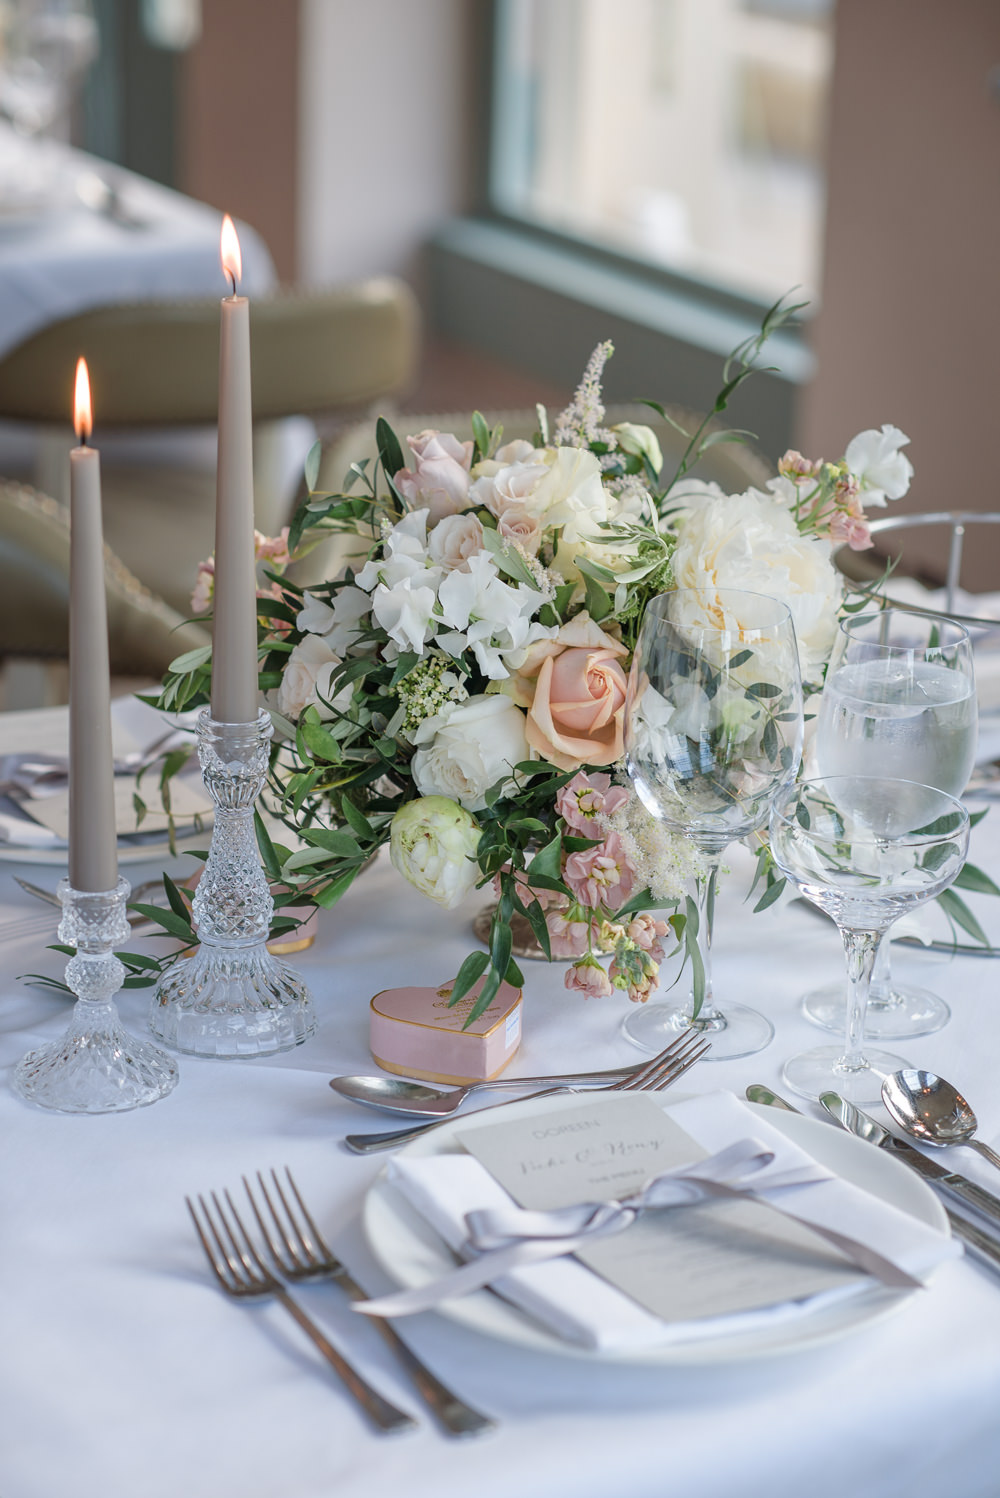 Crystal Candlestick Flowers Floral Blush Peach Cream Table Setting Babington House Wedding Ria Mishaal Photography